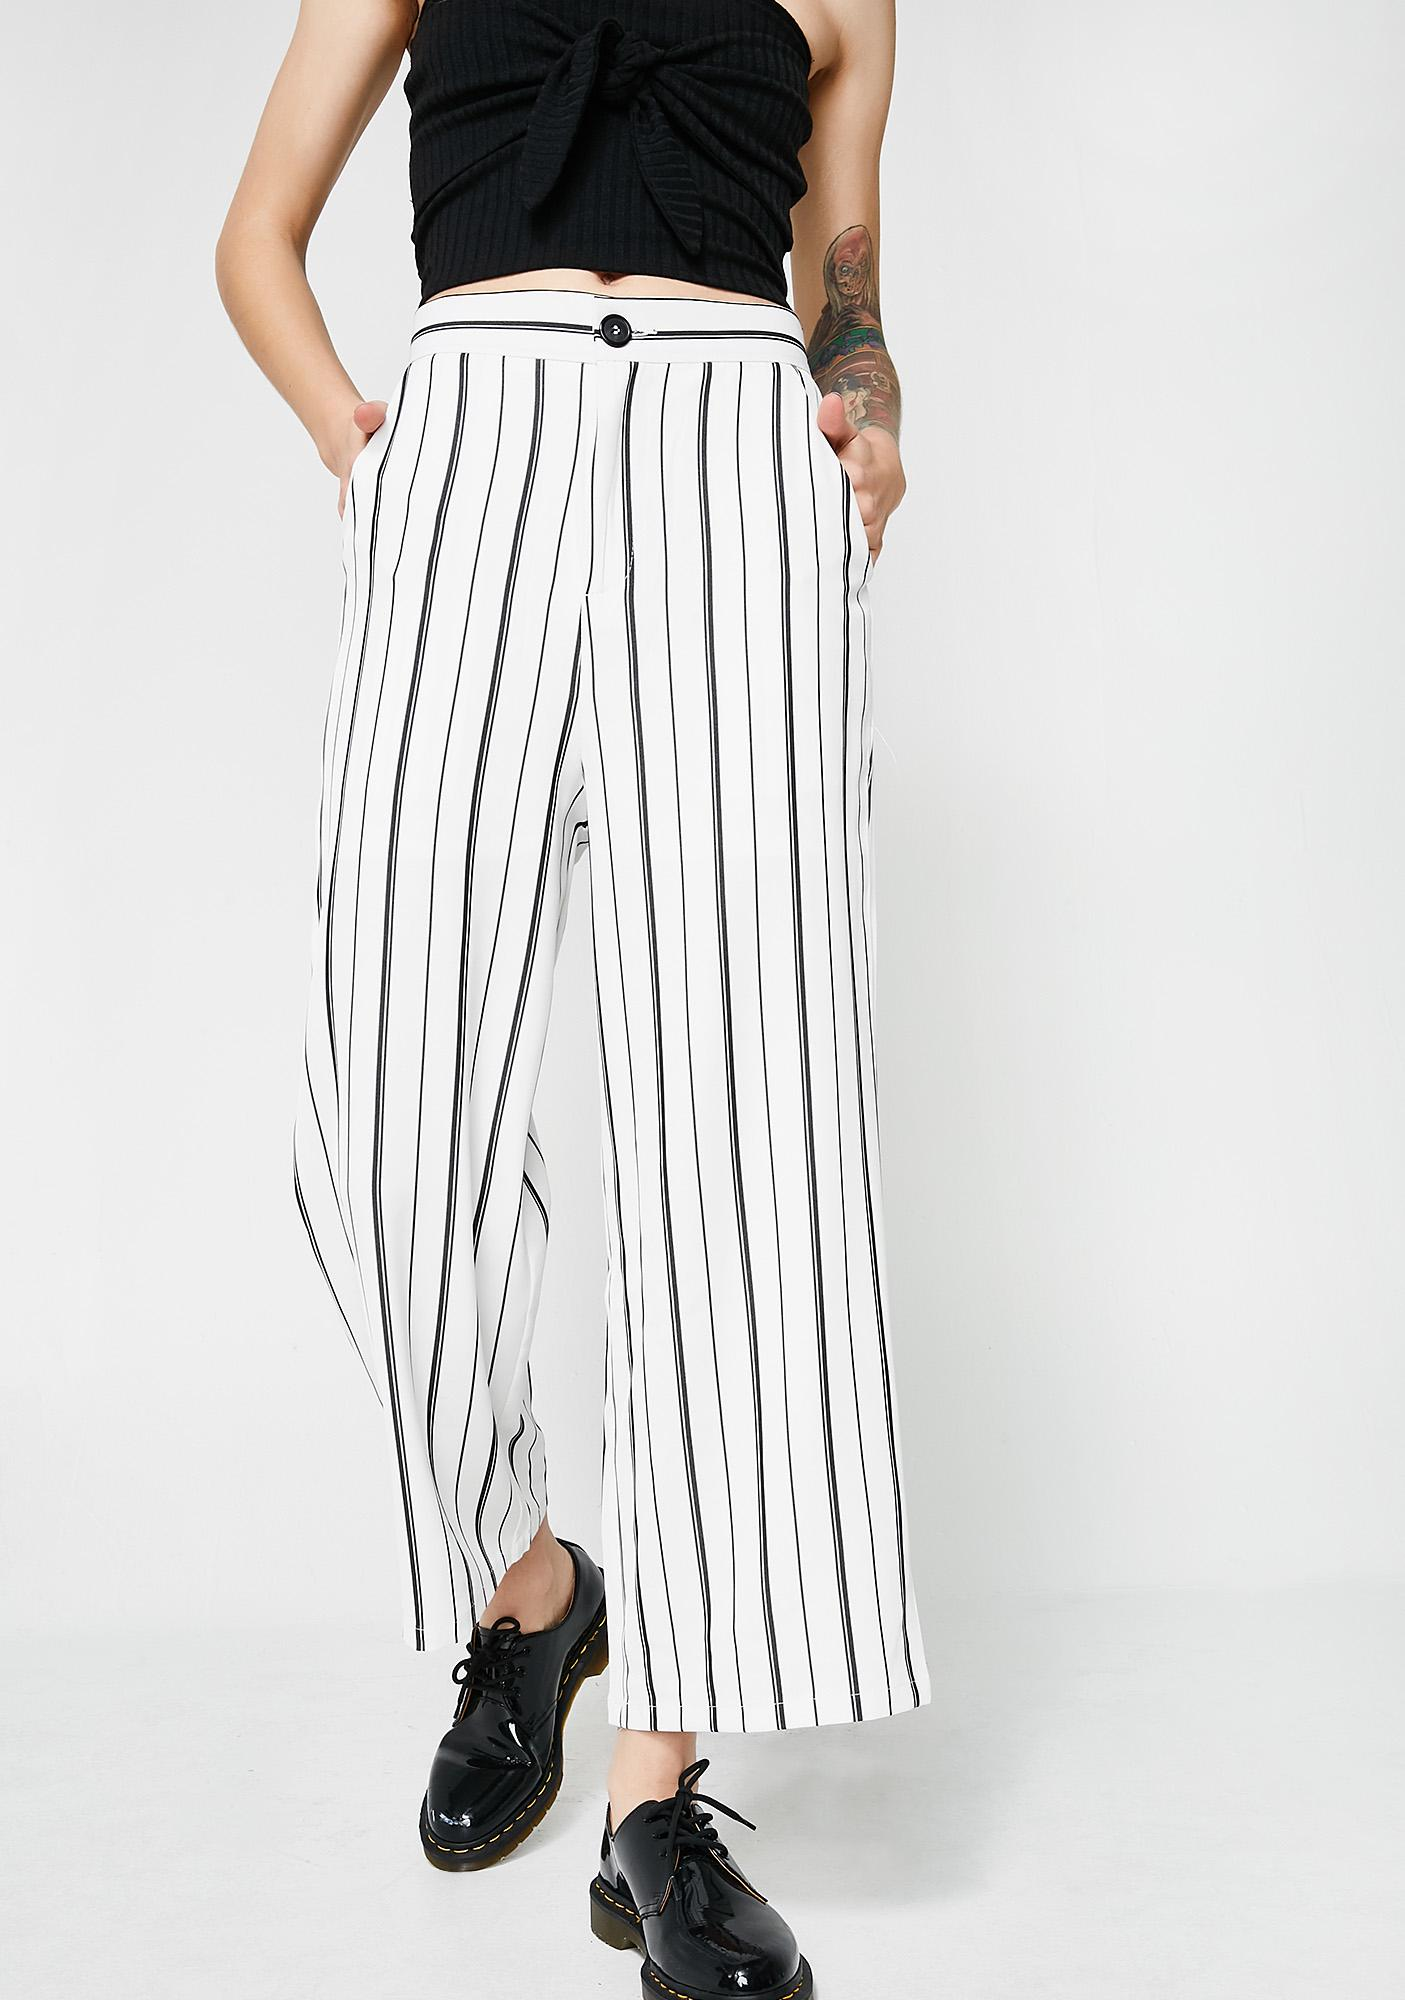 Breakin' Rulez Striped Trousers